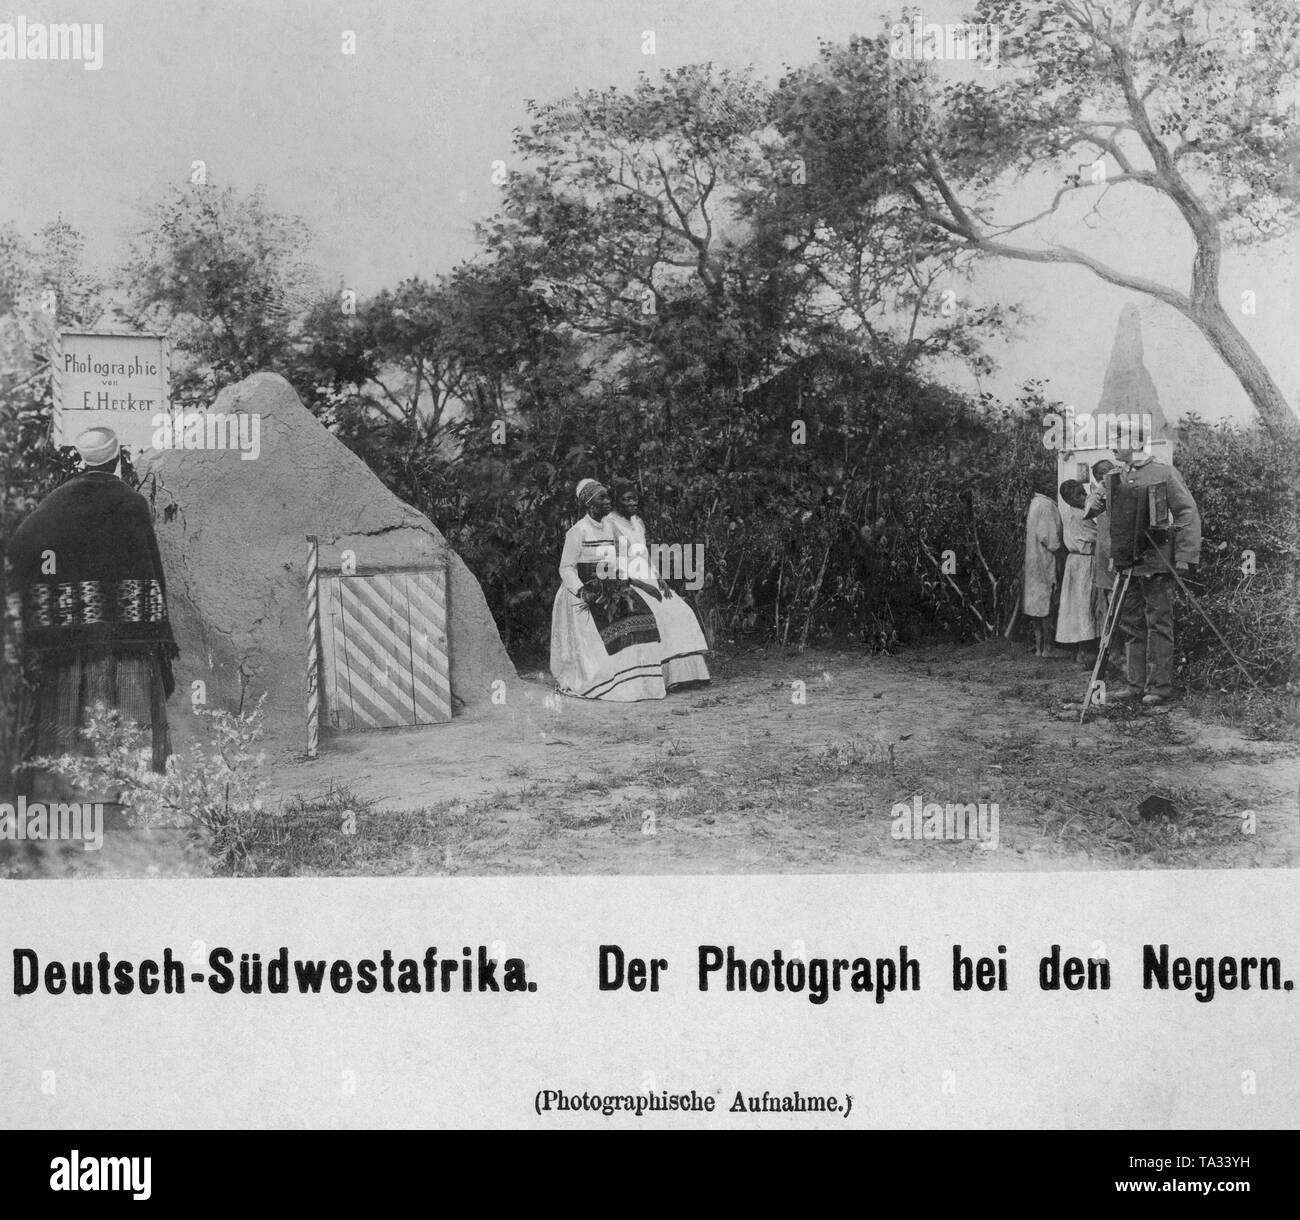 The photographer E. Hecker photographs local women in European clothing in German Southwest Africa. - Stock Image